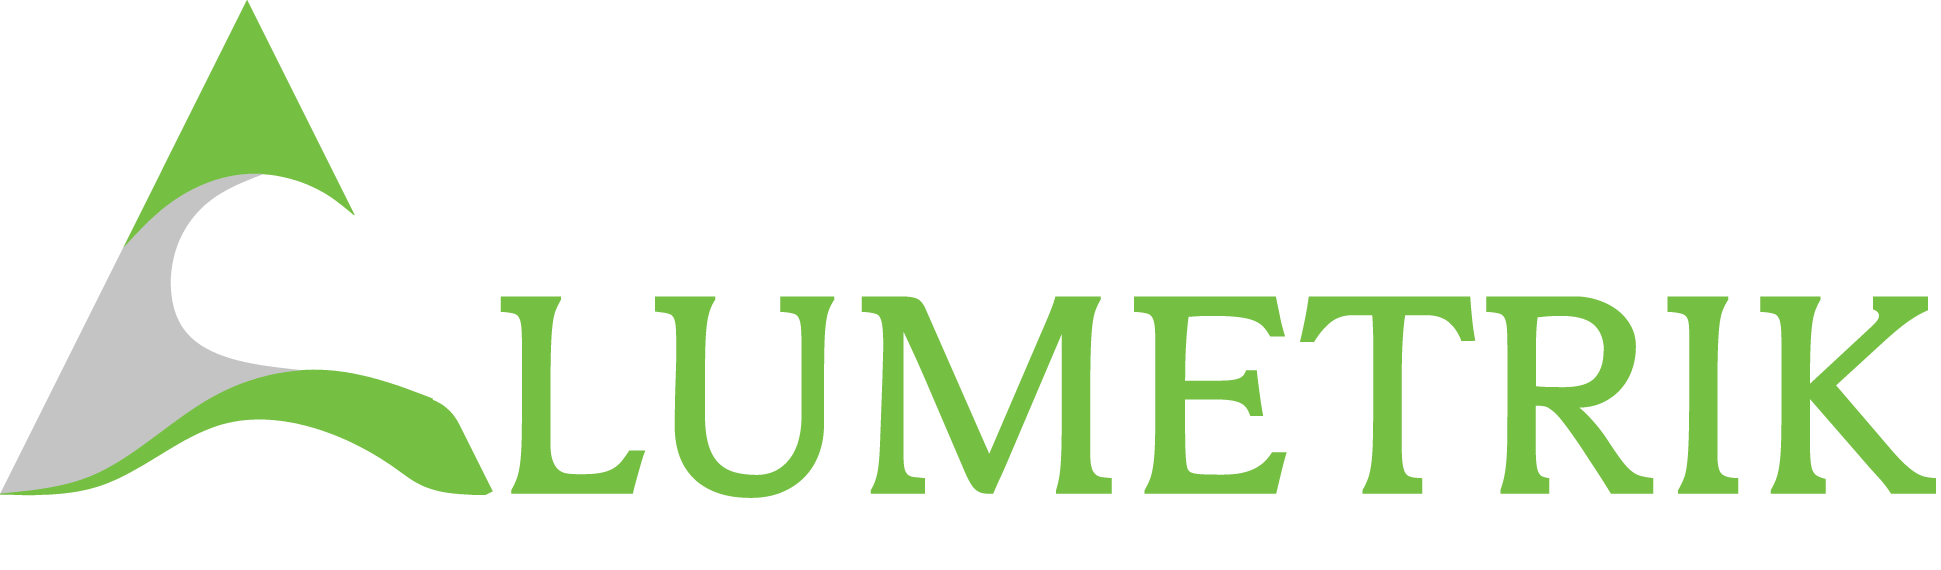 logo-for-Alumtrik.com